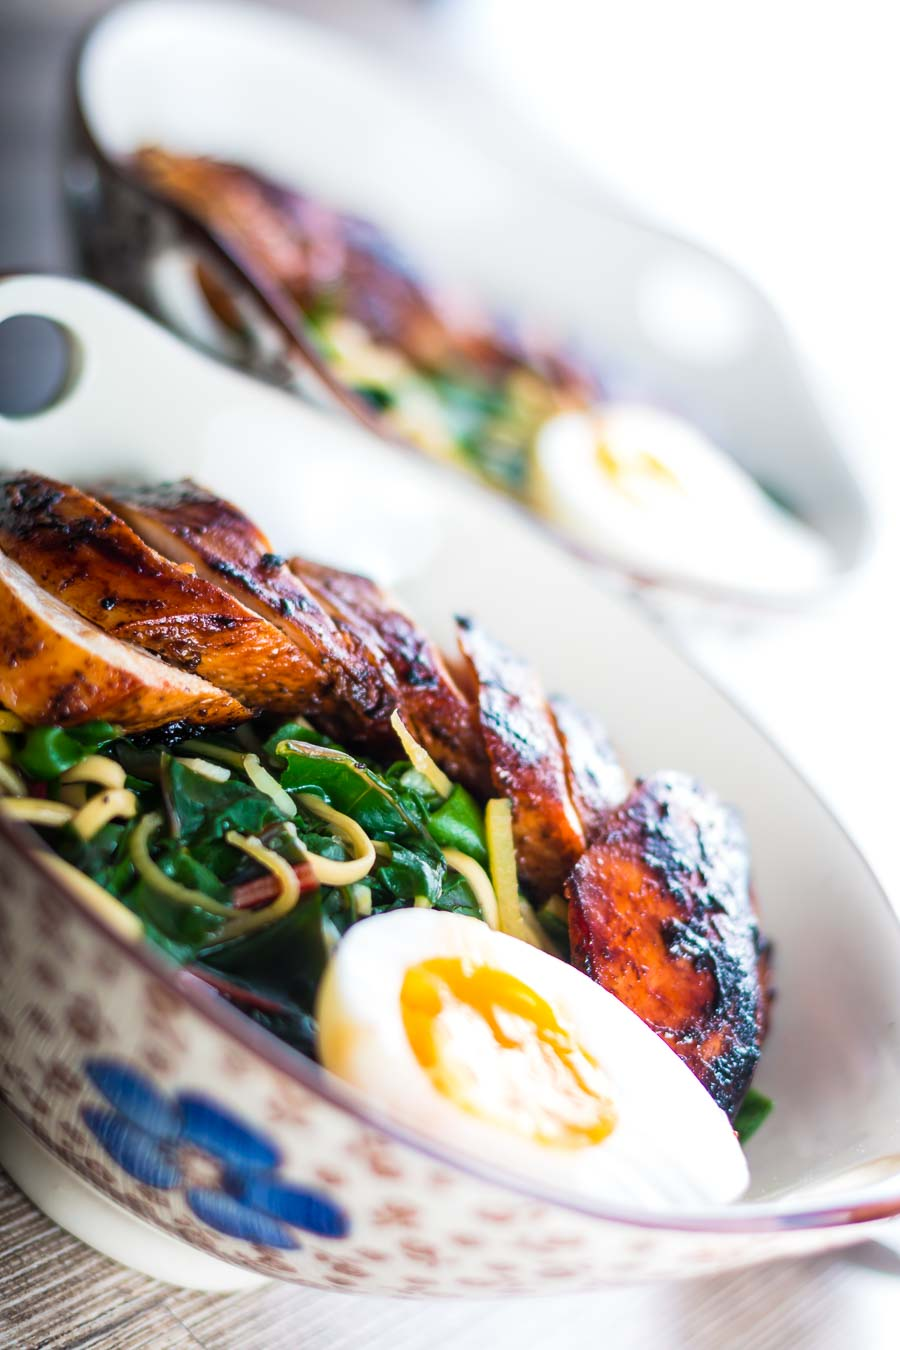 This dish is a bit of an homage to Wagamama a place I liked for quick and simple food in the UK, an Asian inspired Hoisin Chicken Noodle Soup.